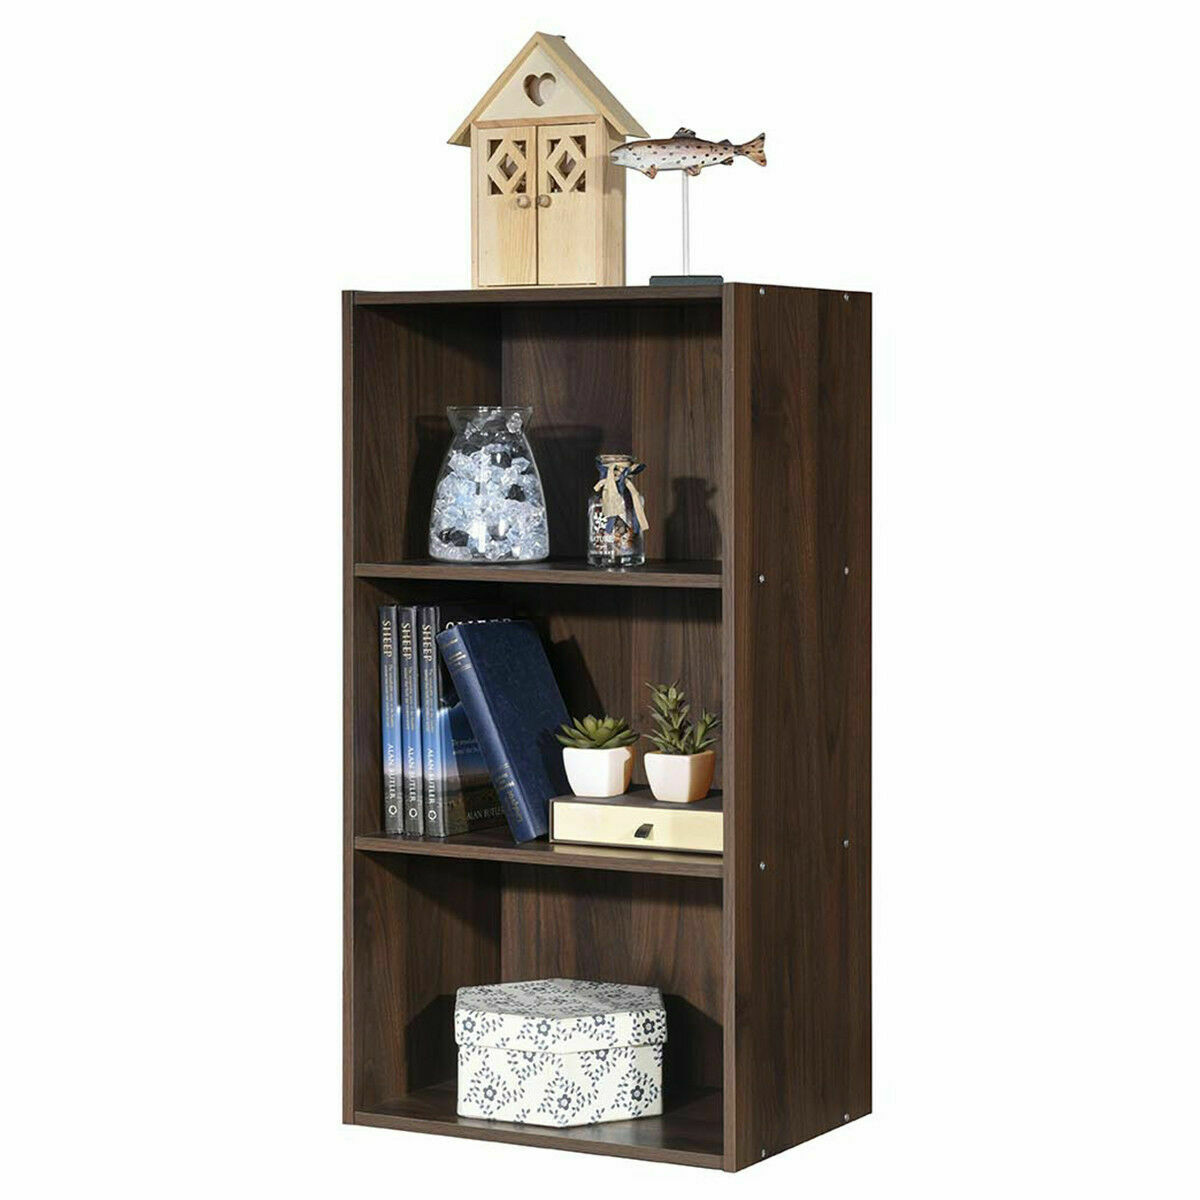 3 Open Shelf Bookcase Modern Multi Functional Storage Display Cabinet Walnut